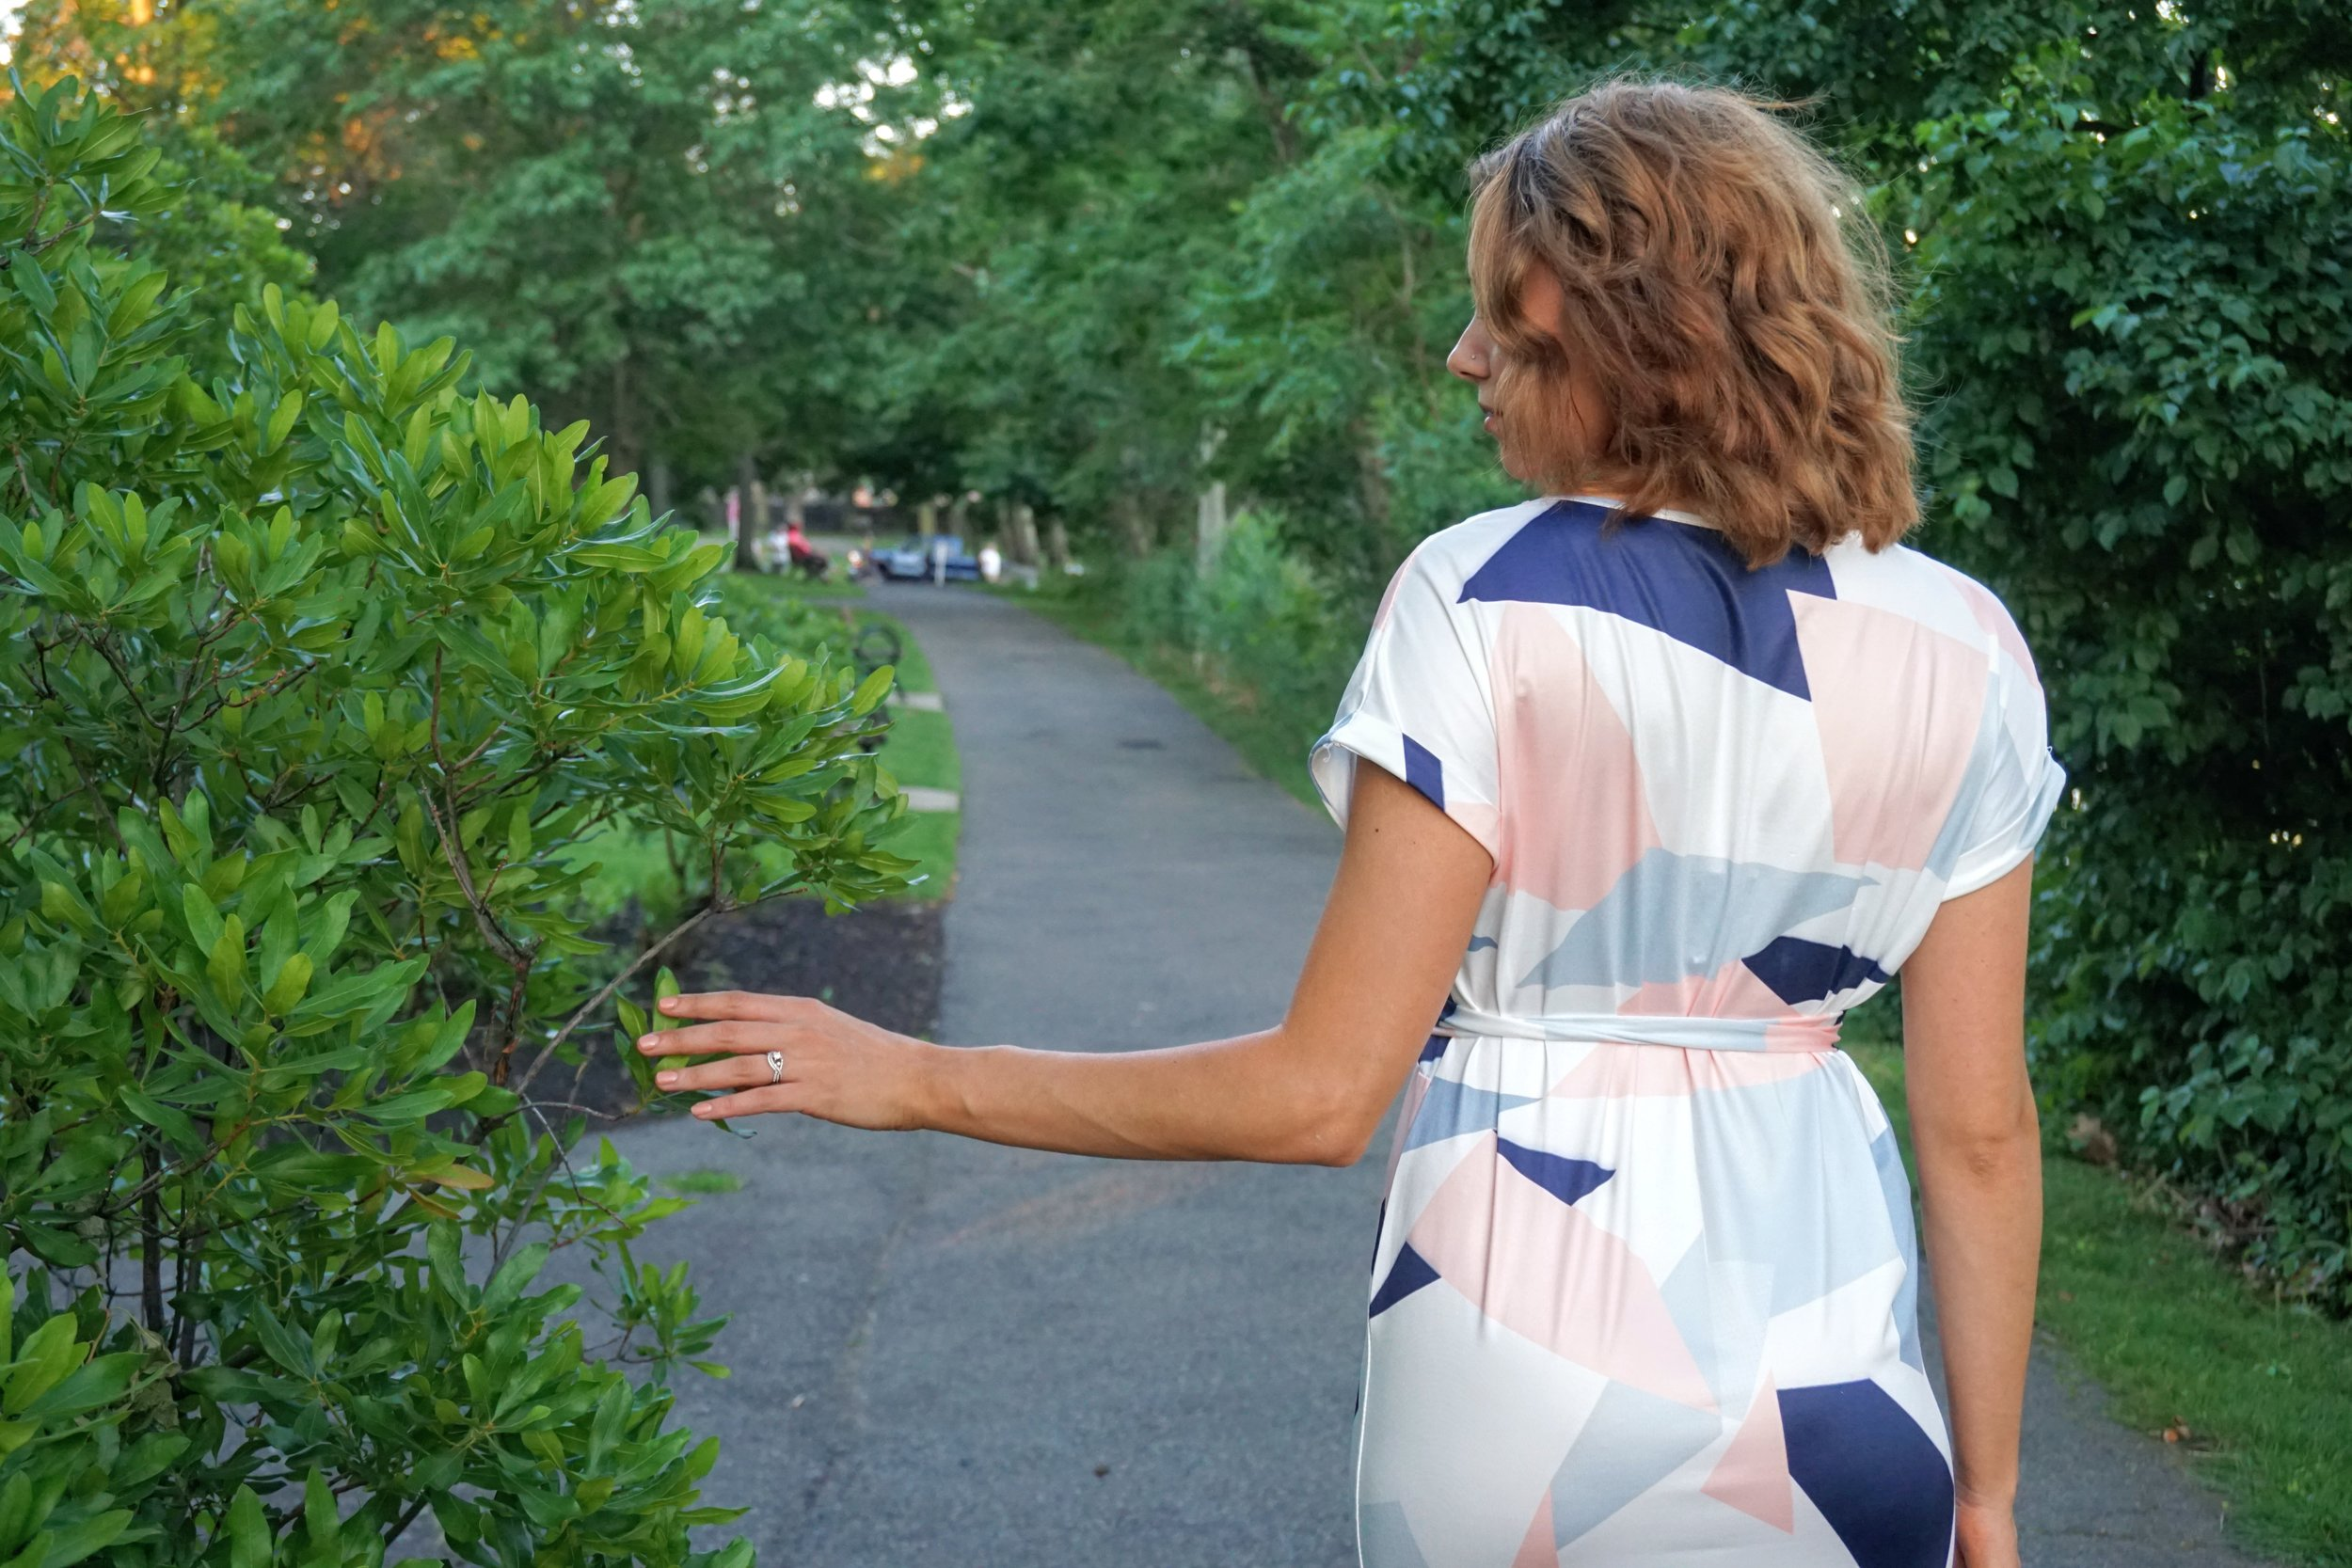 A photo of a girl turning her back on the camera, wearing a pink, white and blue dress.